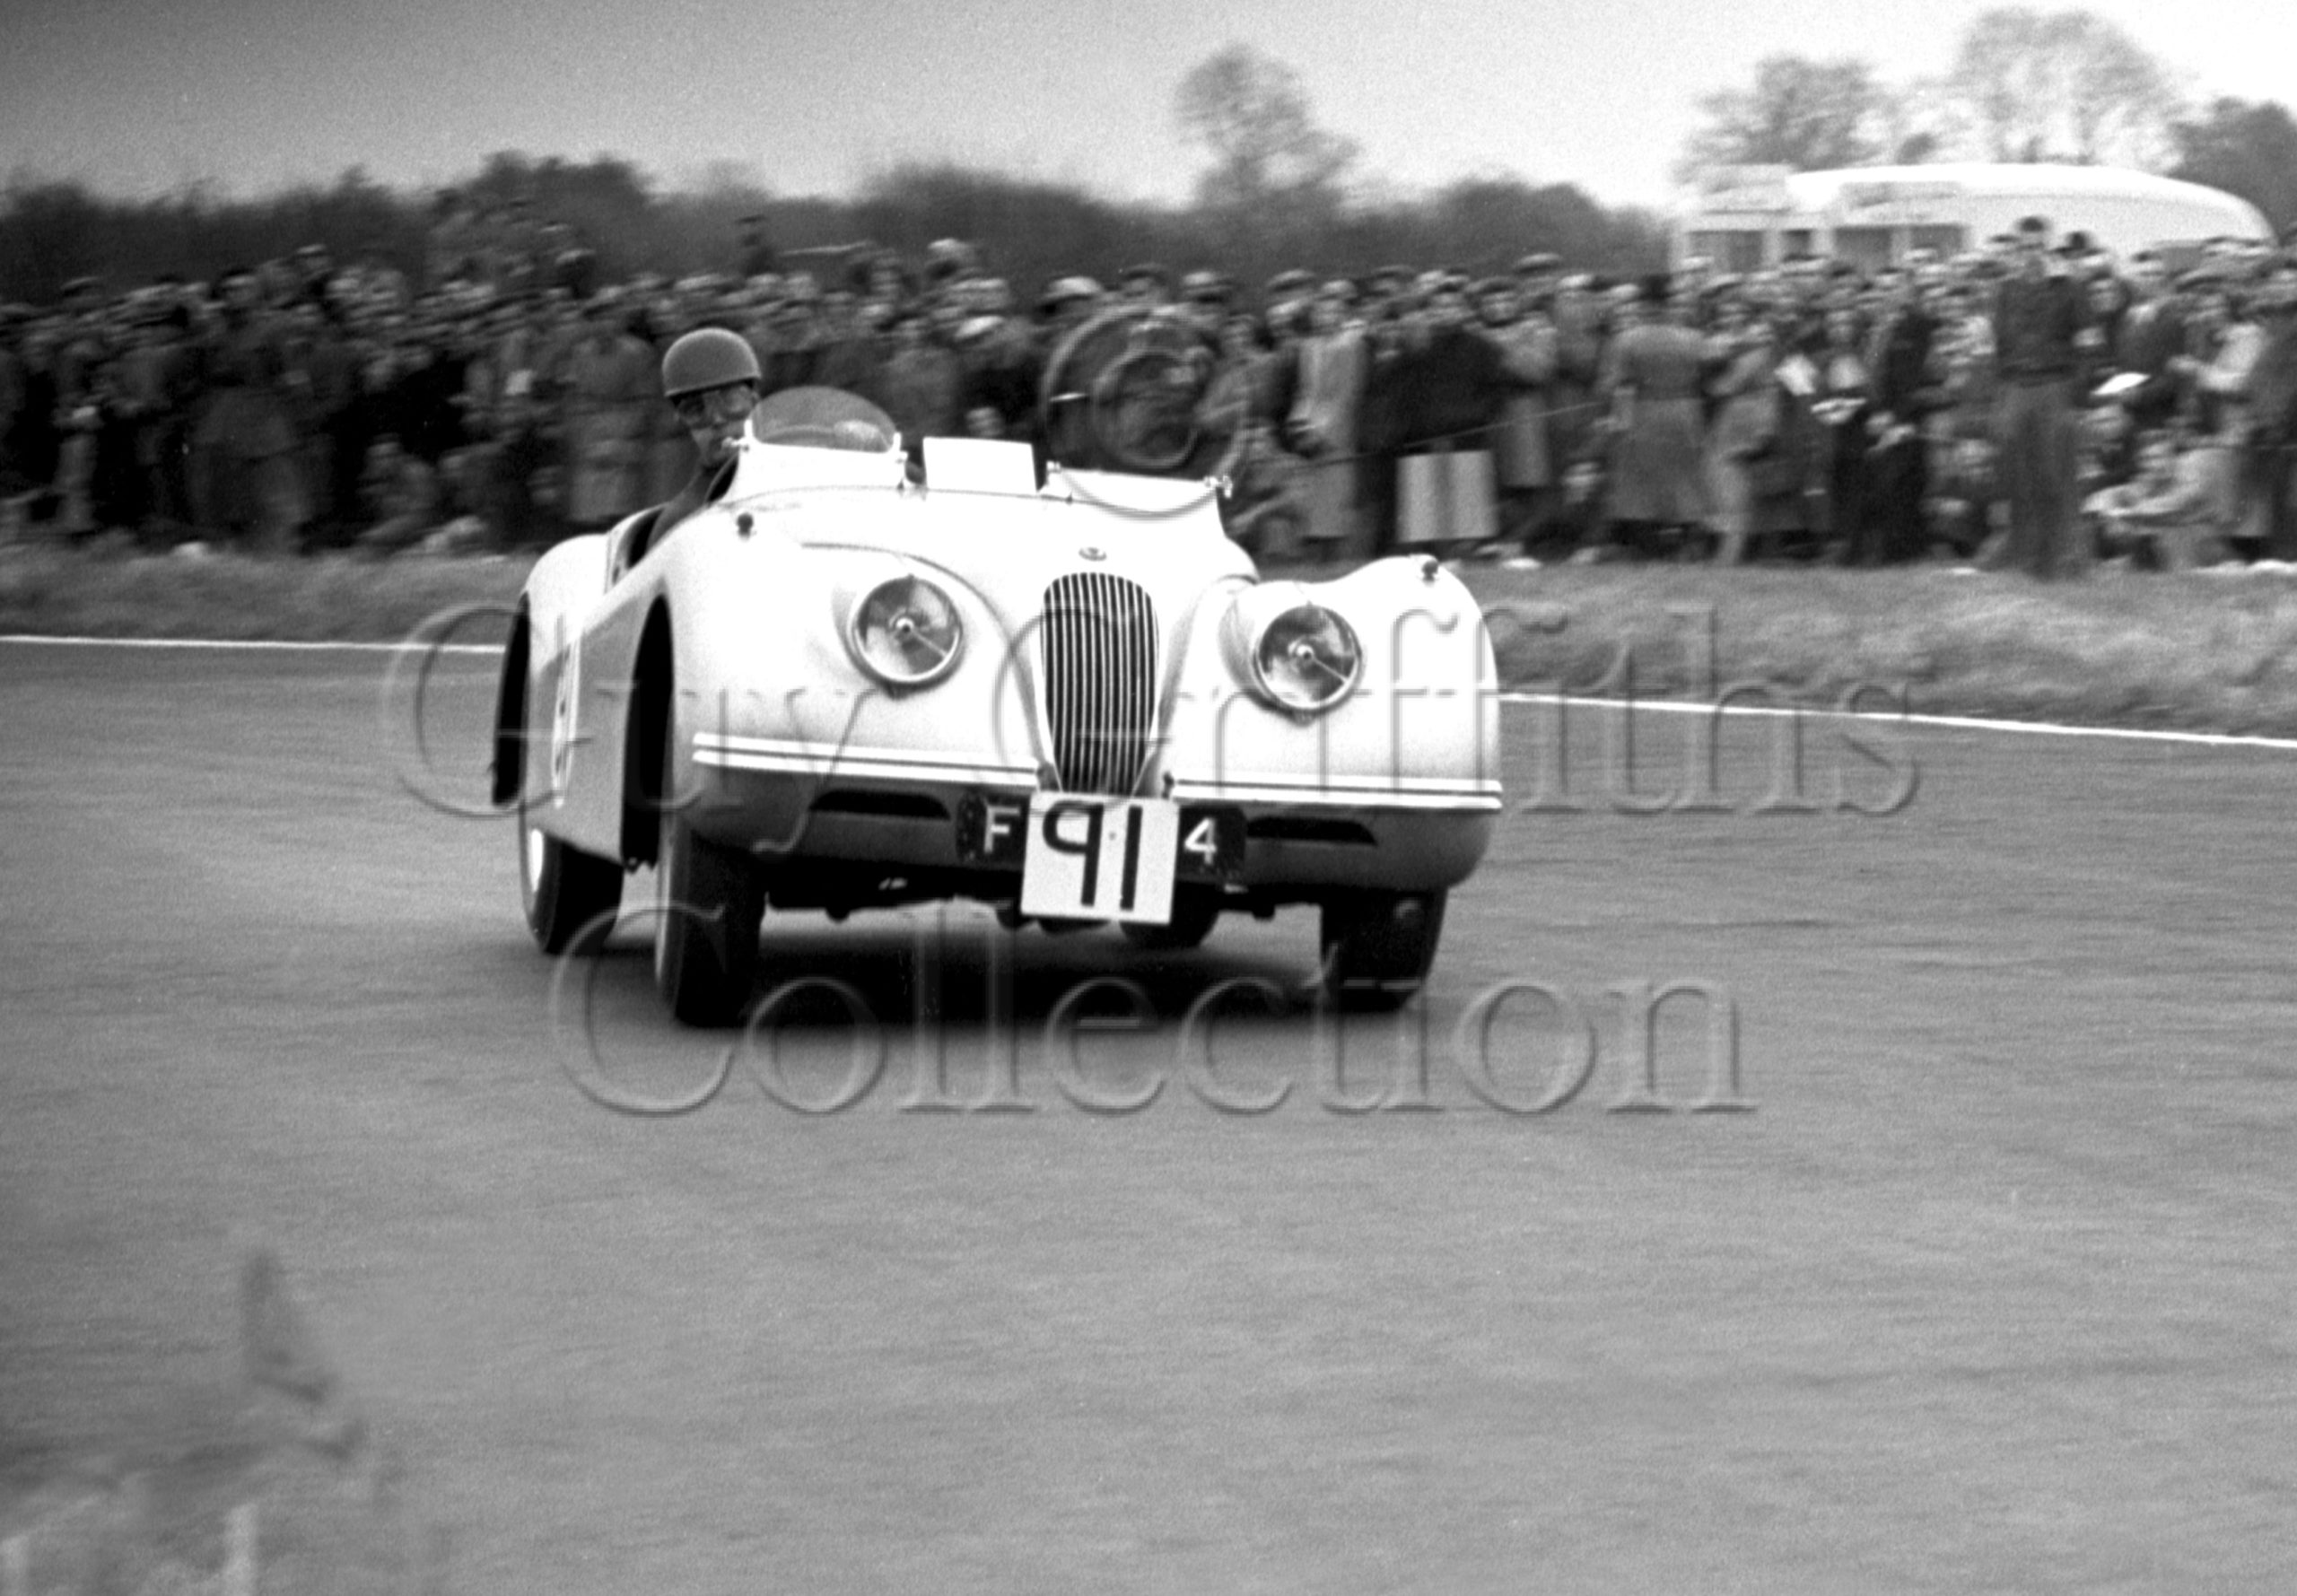 52-186–J-Riseley-Prichard–Jaguar-XK-120-FPN-124–Castle-Combe–12-04-1952.jpg - Guy Griffiths Collection